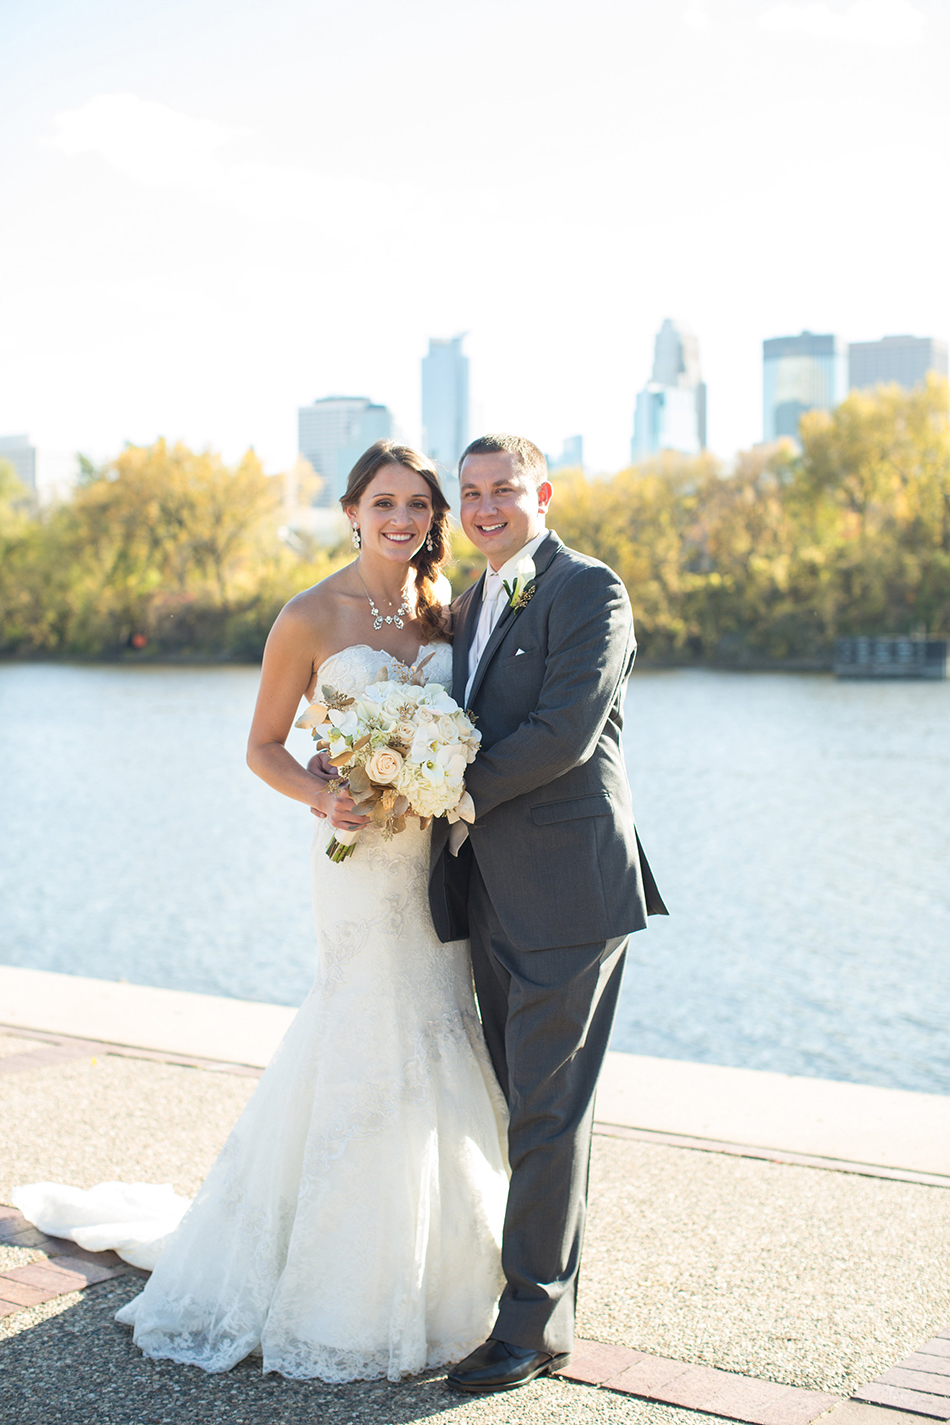 watters_minneapolis_realwedding14.jpg